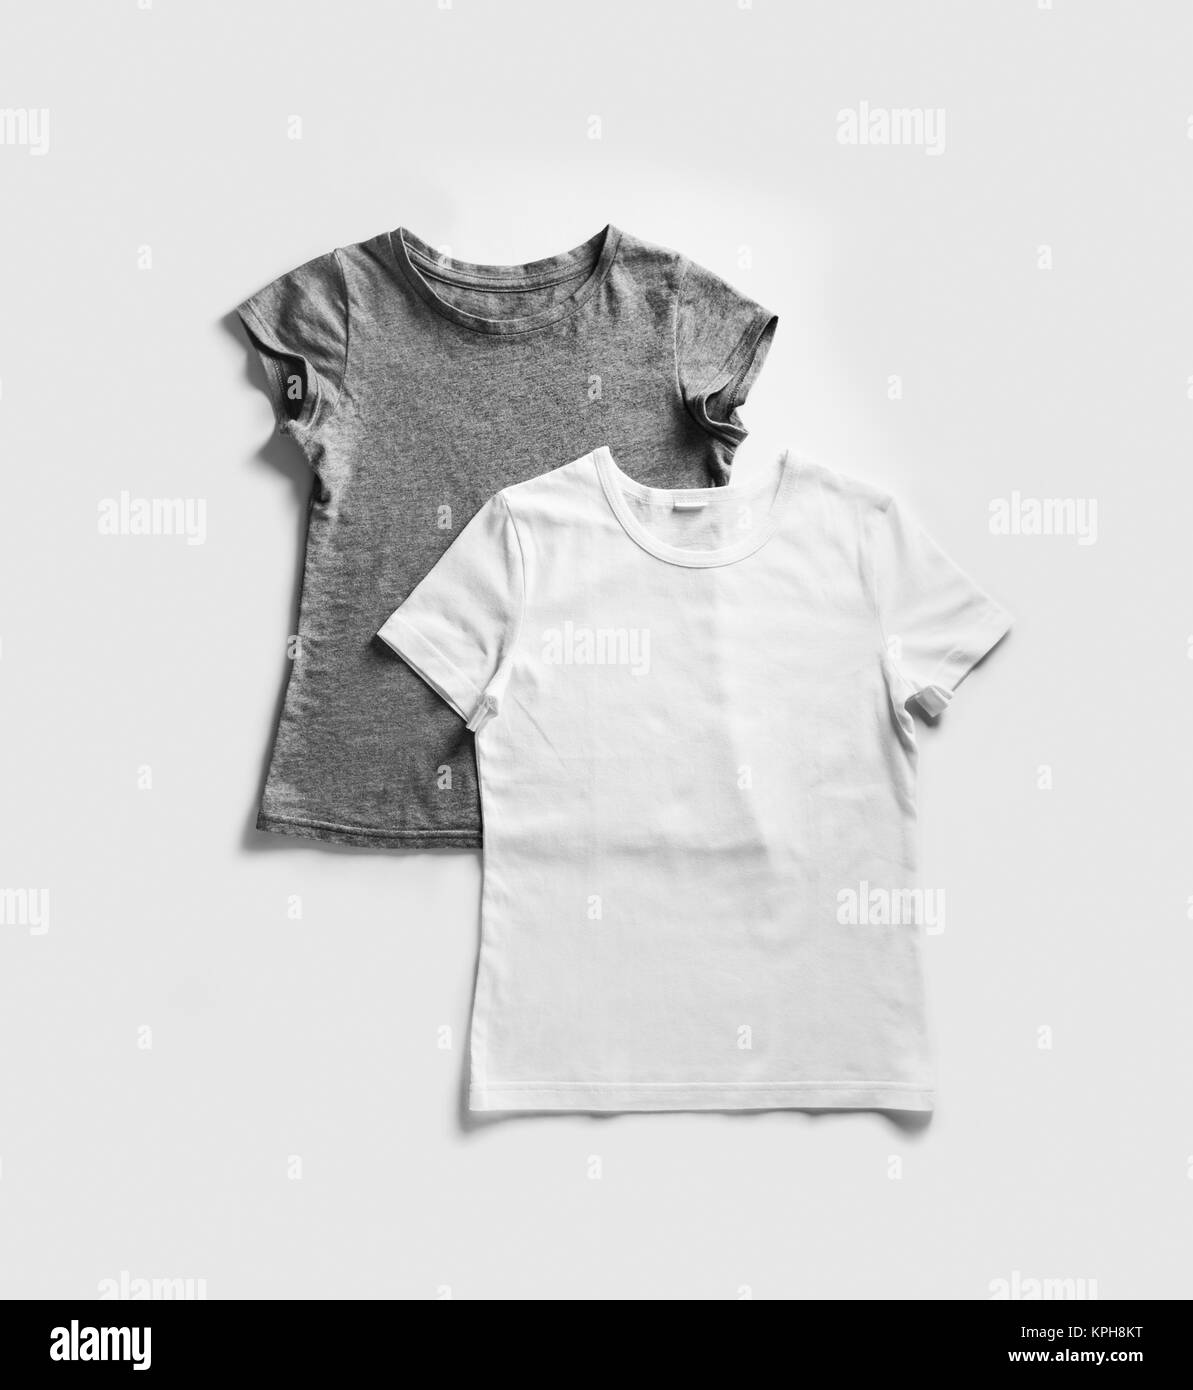 Tshirt Template Stockfotos & Tshirt Template Bilder - Alamy